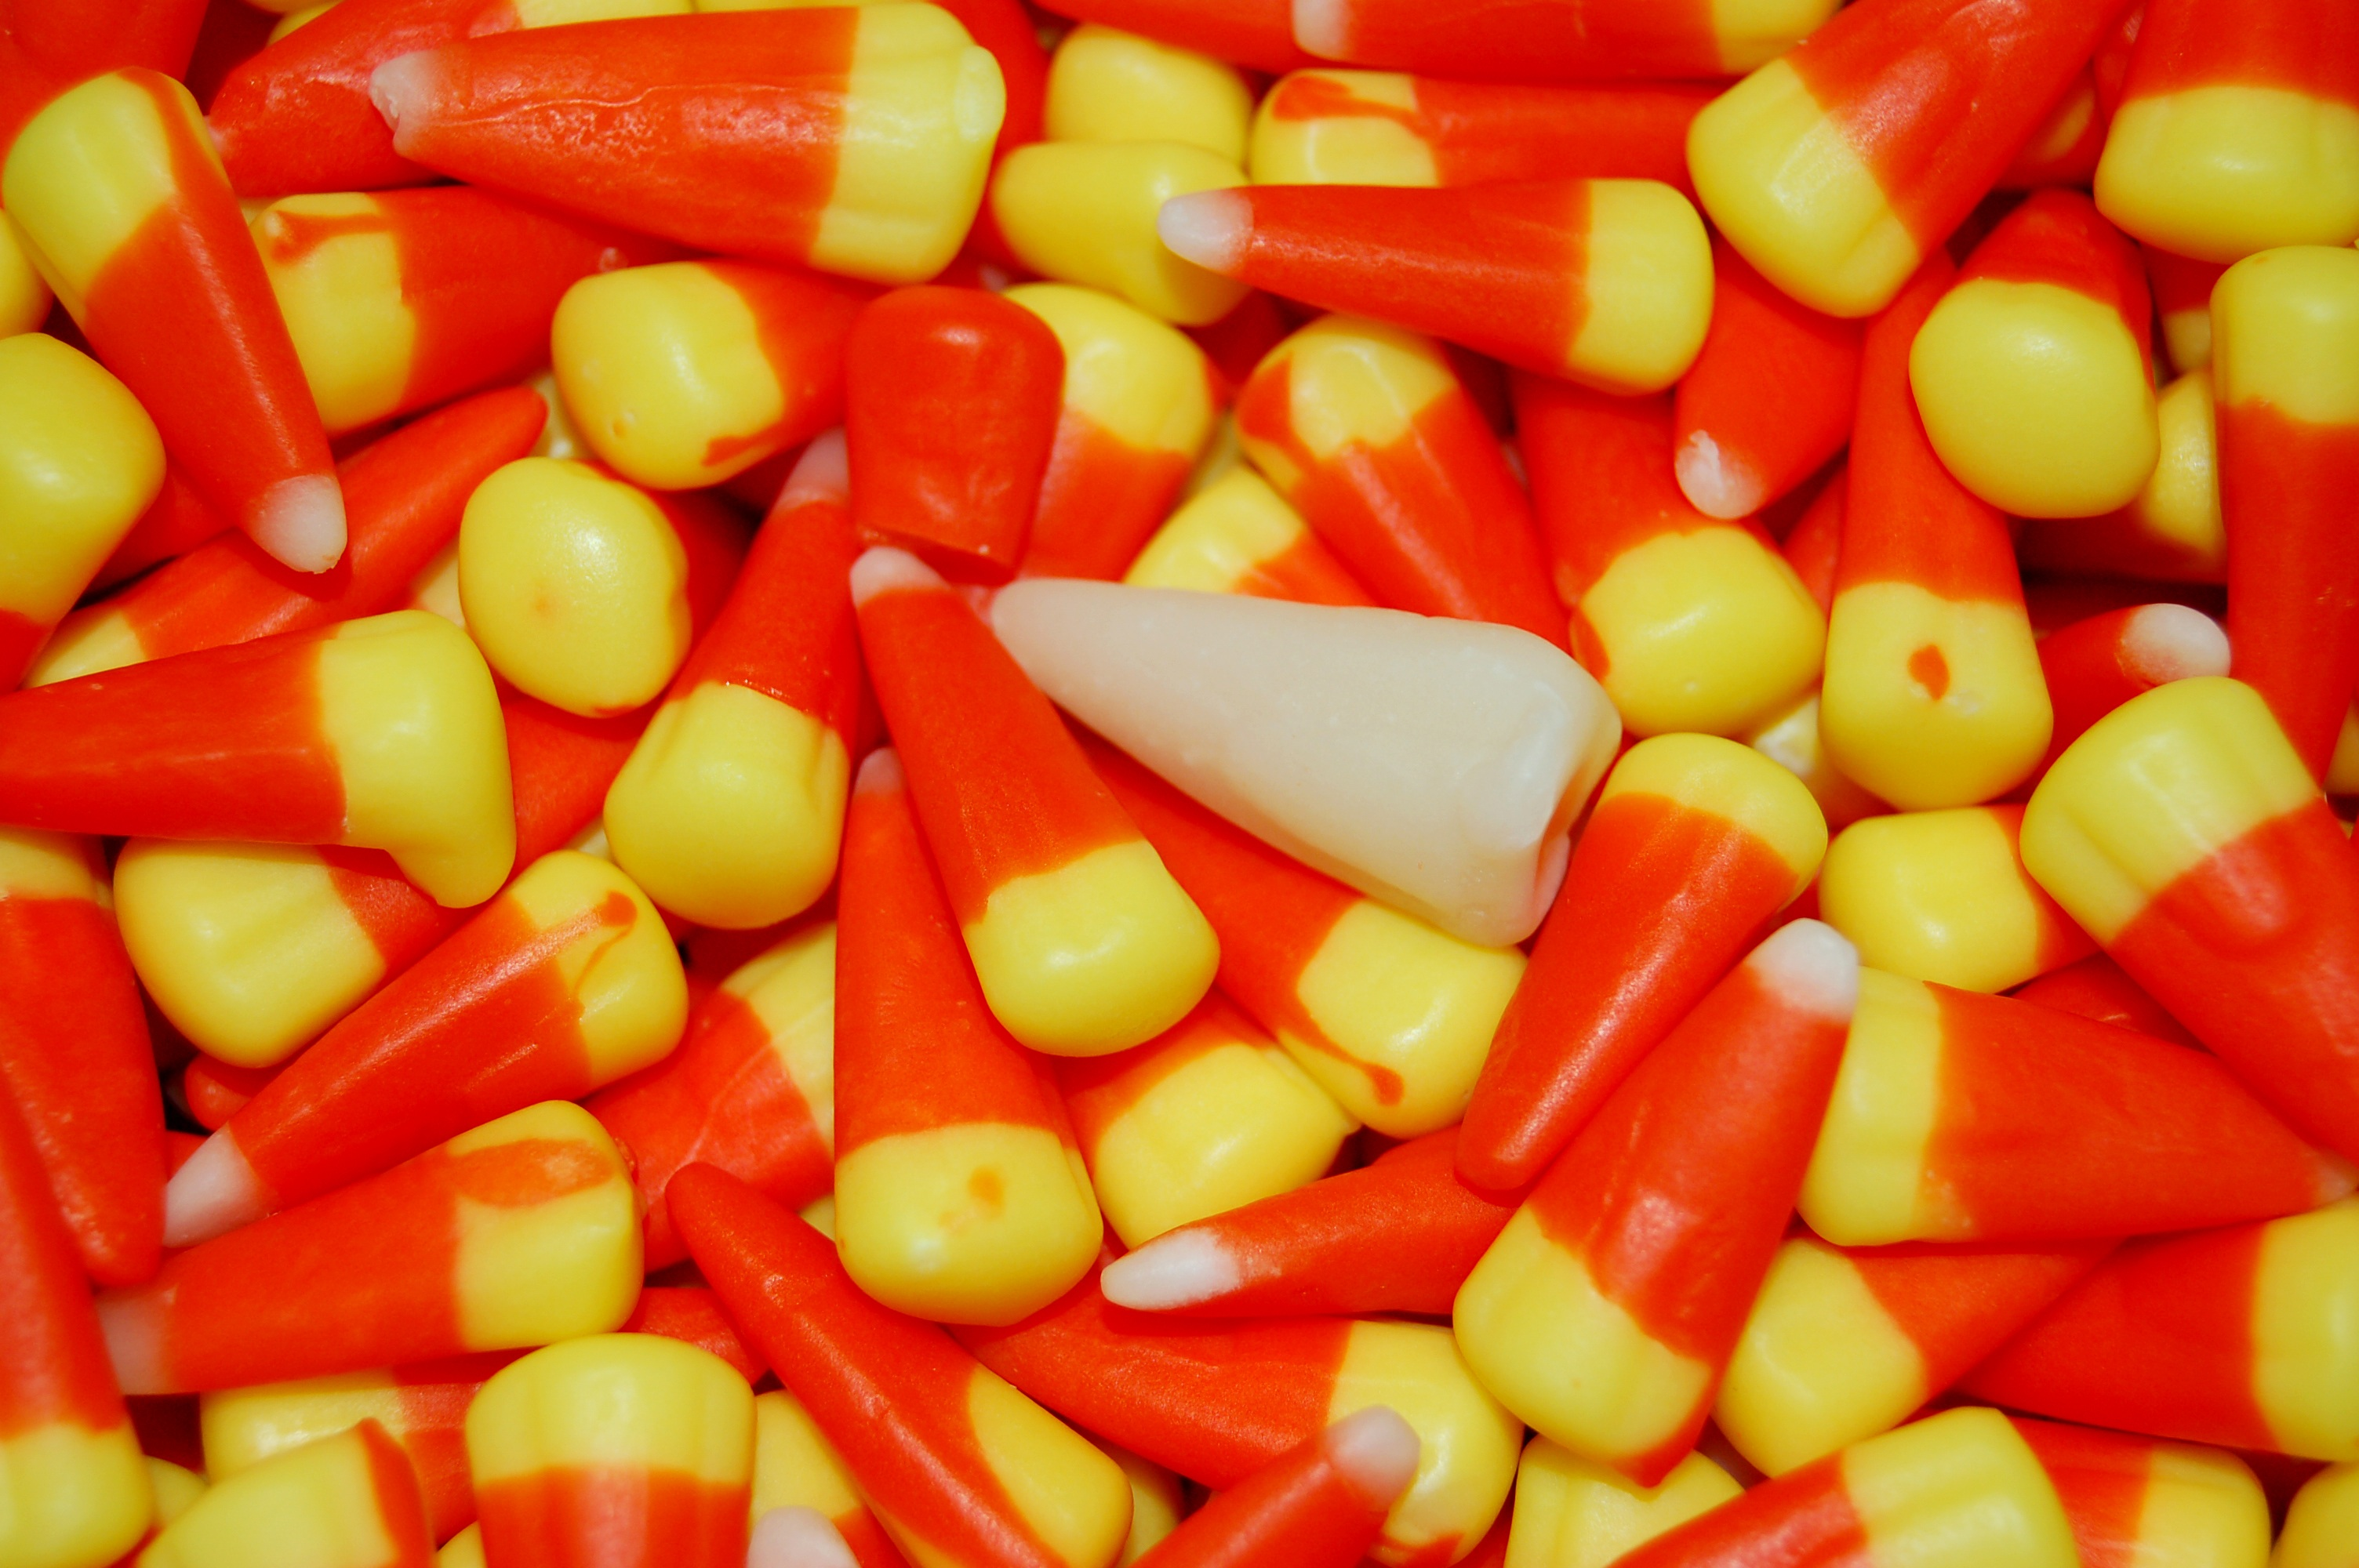 Billions of pieces of candy will be consumed this Halloween, with less than desirable eco effects